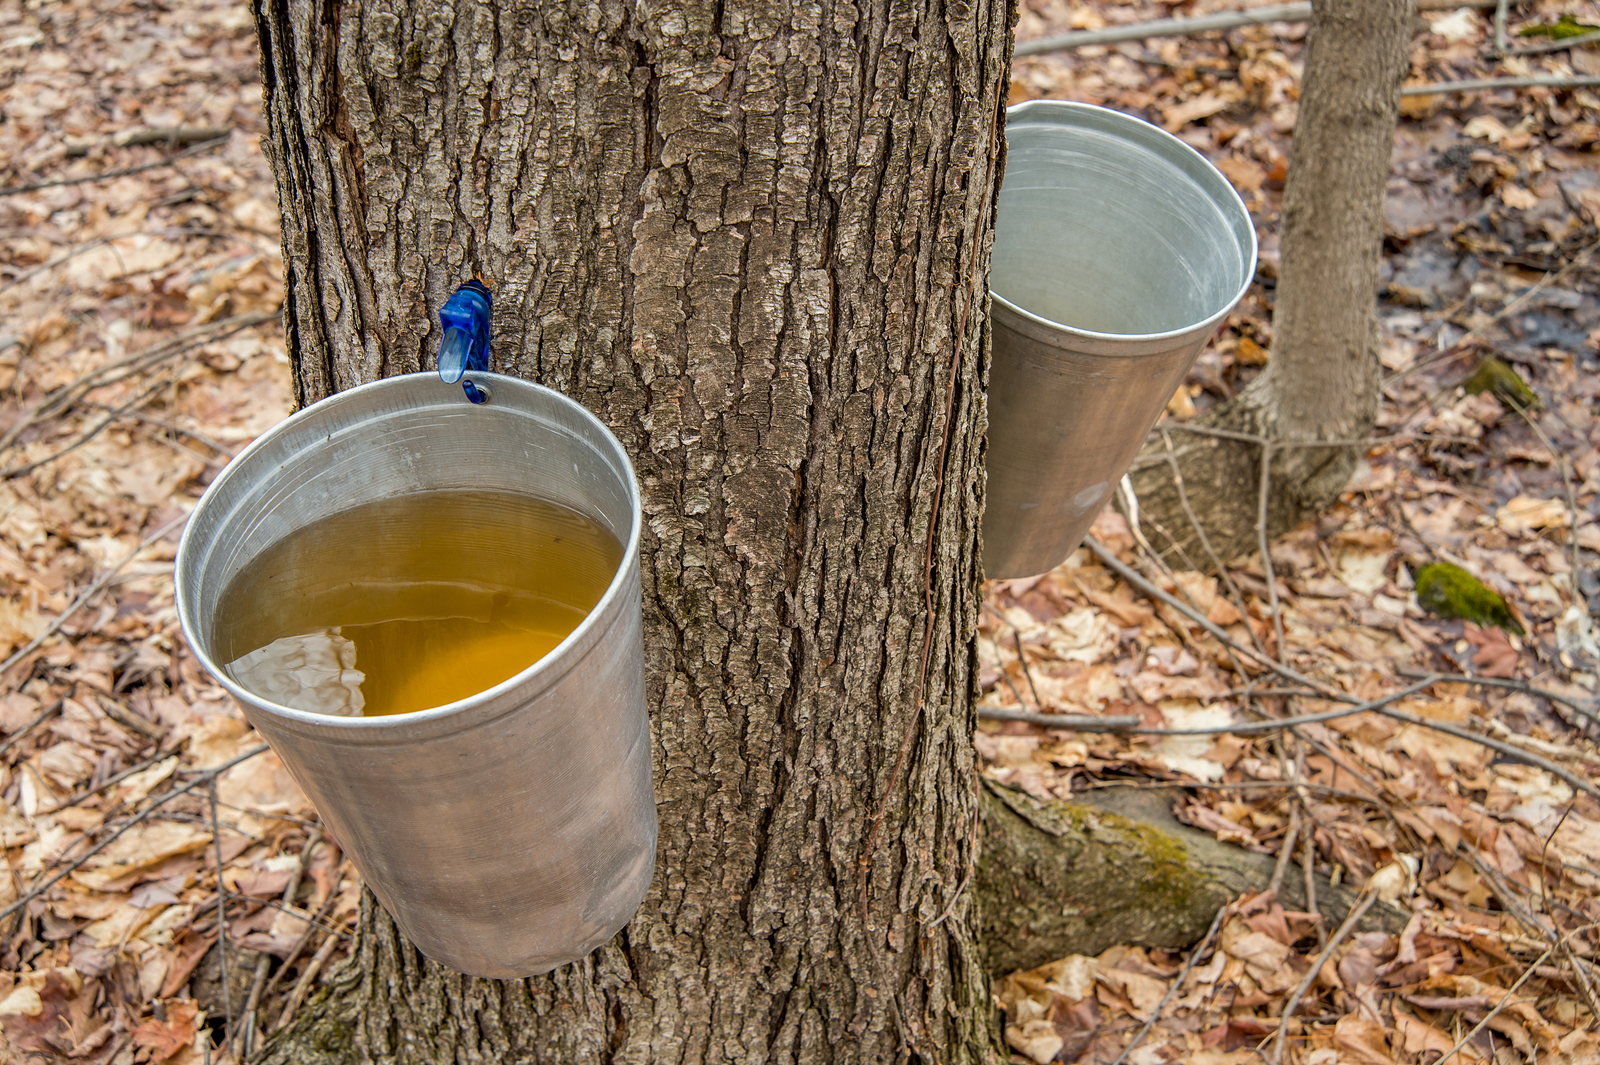 An anticipated Spring activity in my neck of the woods is making maple syrup.